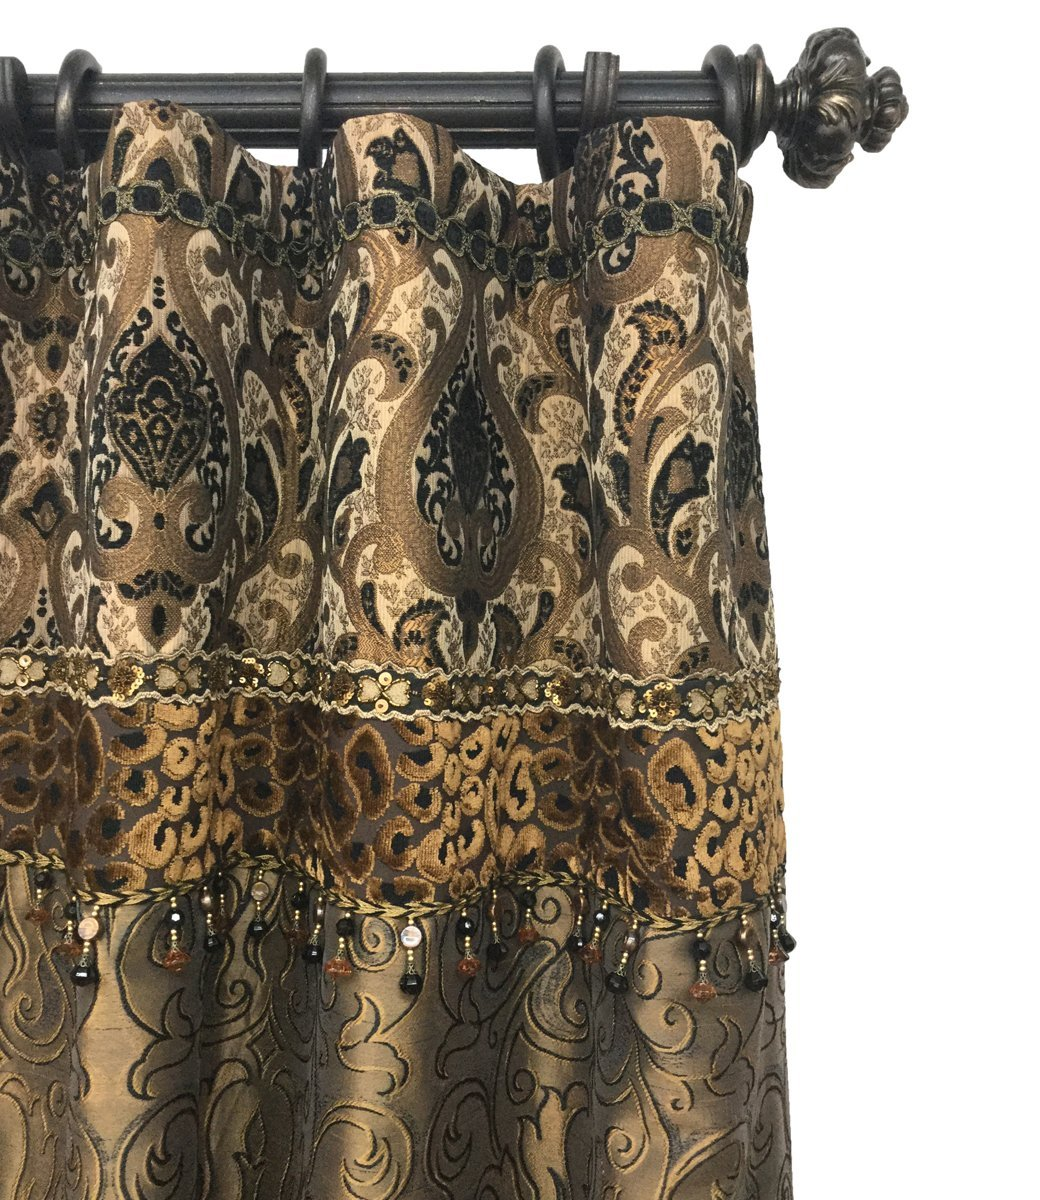 Luxury Curtain Panel Style 7 With Band Shown In Renaissance Reilly Chance Collection Luxury Curtains Tuscan Bathroom Decor Luxury Drapery